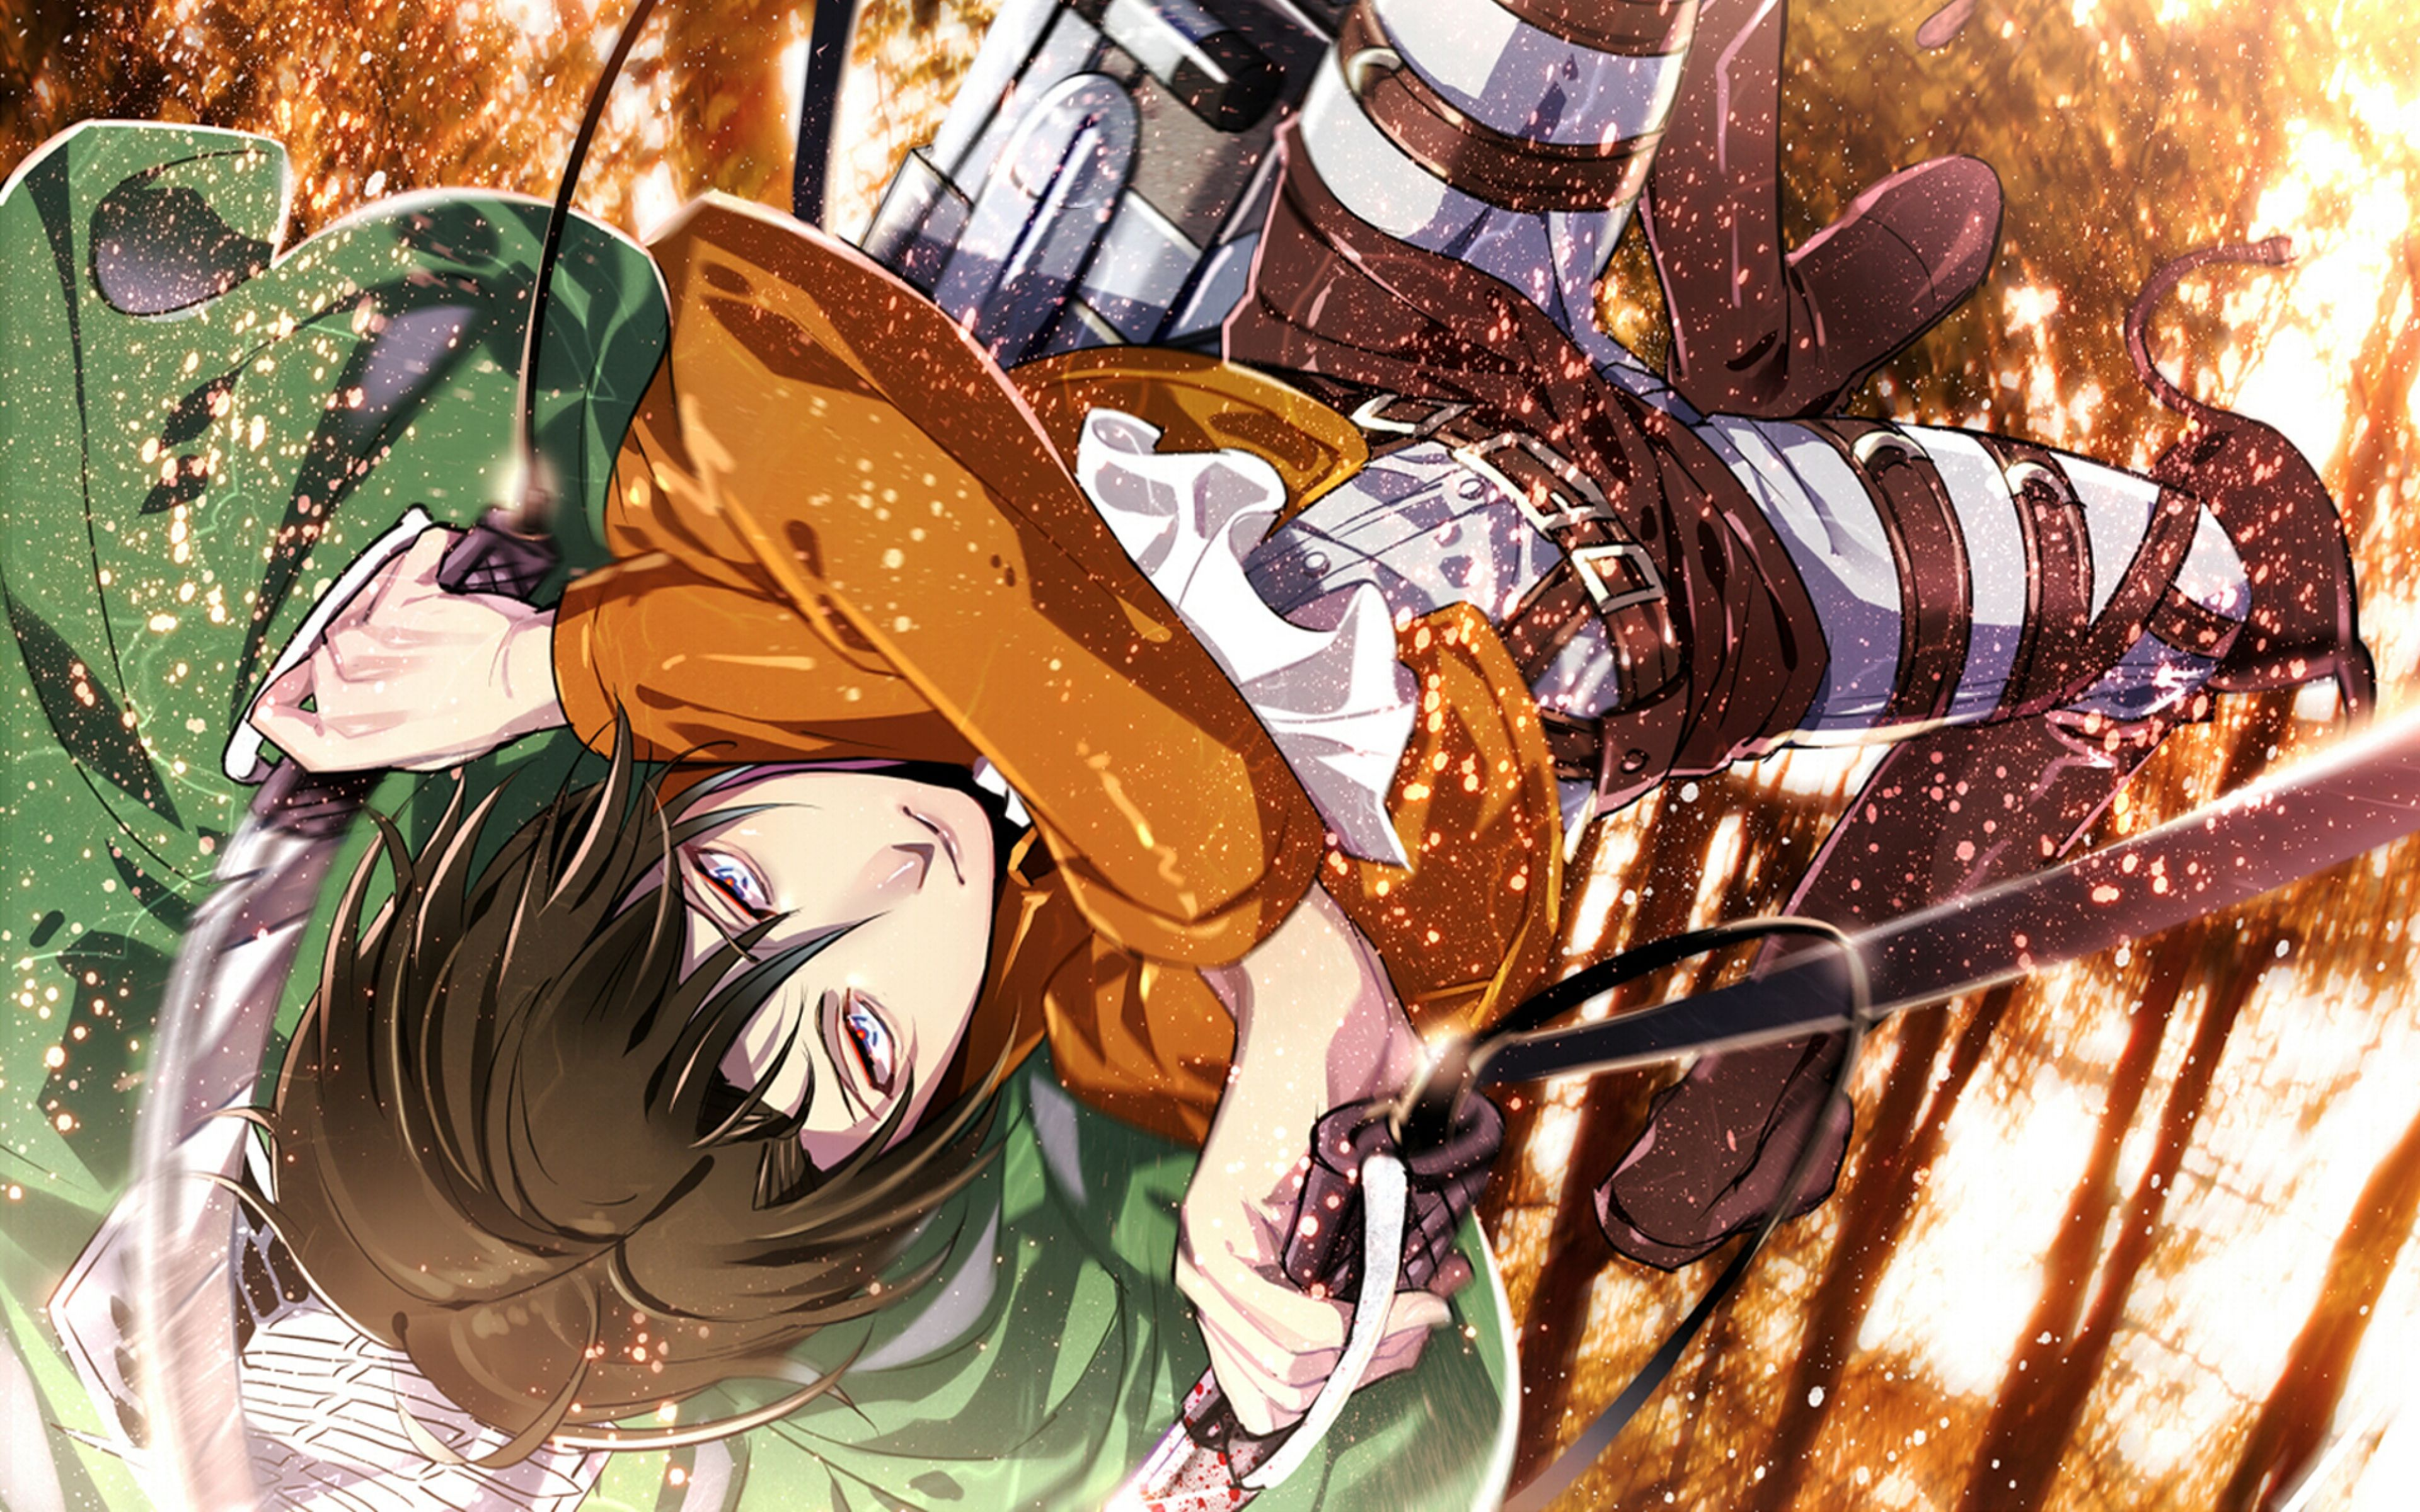 Levi Ackerman Computer Wallpapers Desktop Backgrounds 3840x2400 Id 653523 Anime Wallpaper Anime Attack On Titan Art